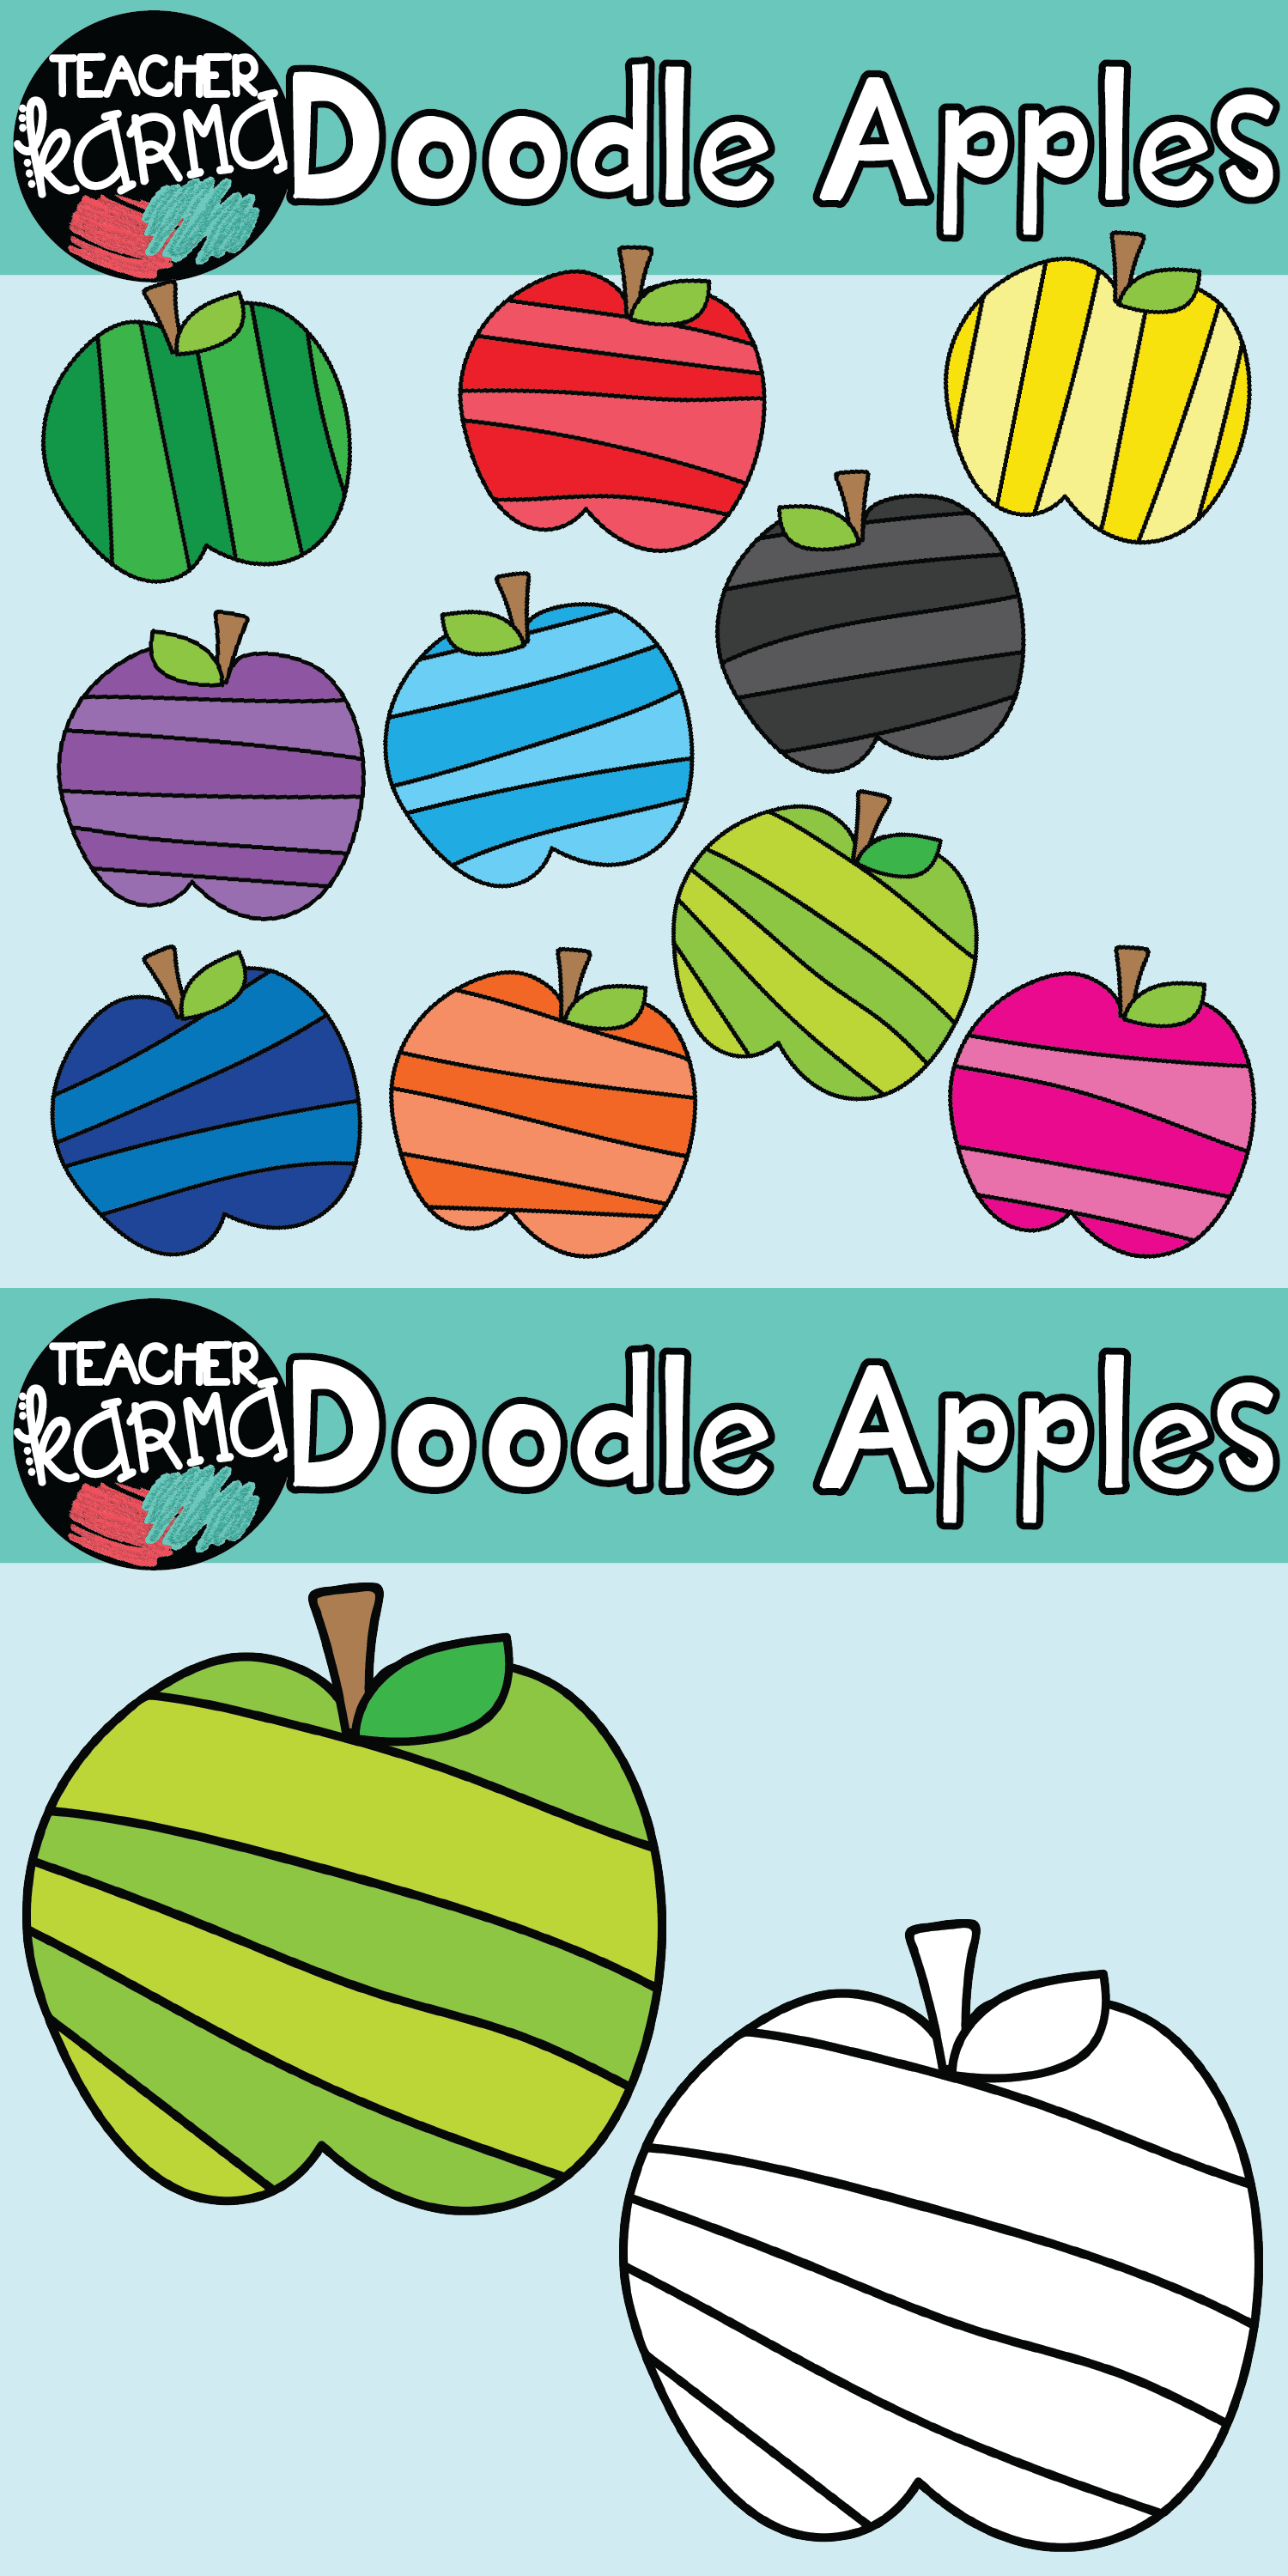 Apples clipart doodle. Classroom resources and teacher